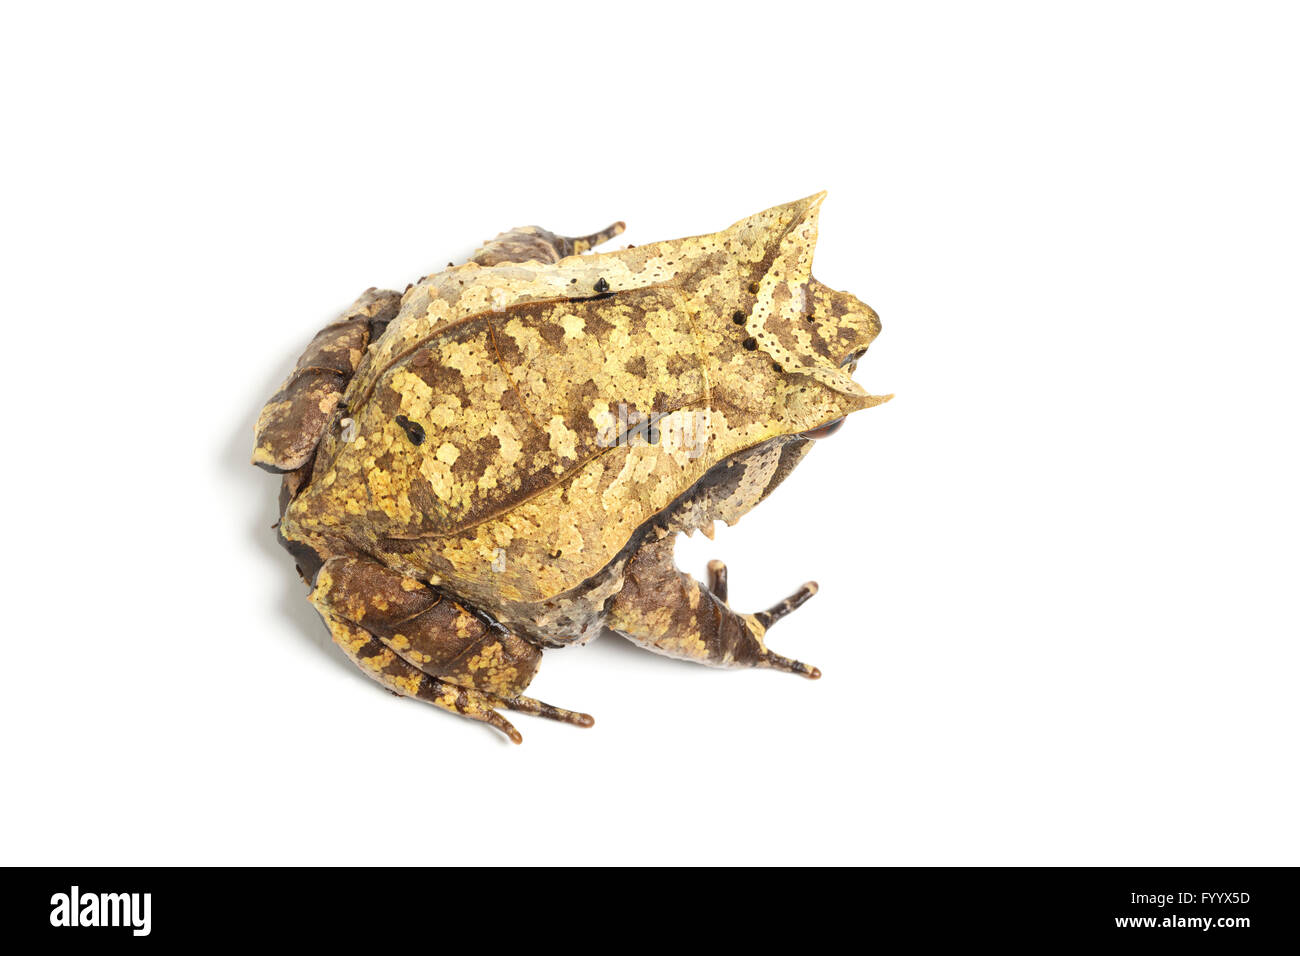 Asian Horned Toad or Frog, Megophrys nasuta, a member of the Megophryidae. Its shape helps to conceal it among dead - Stock Image